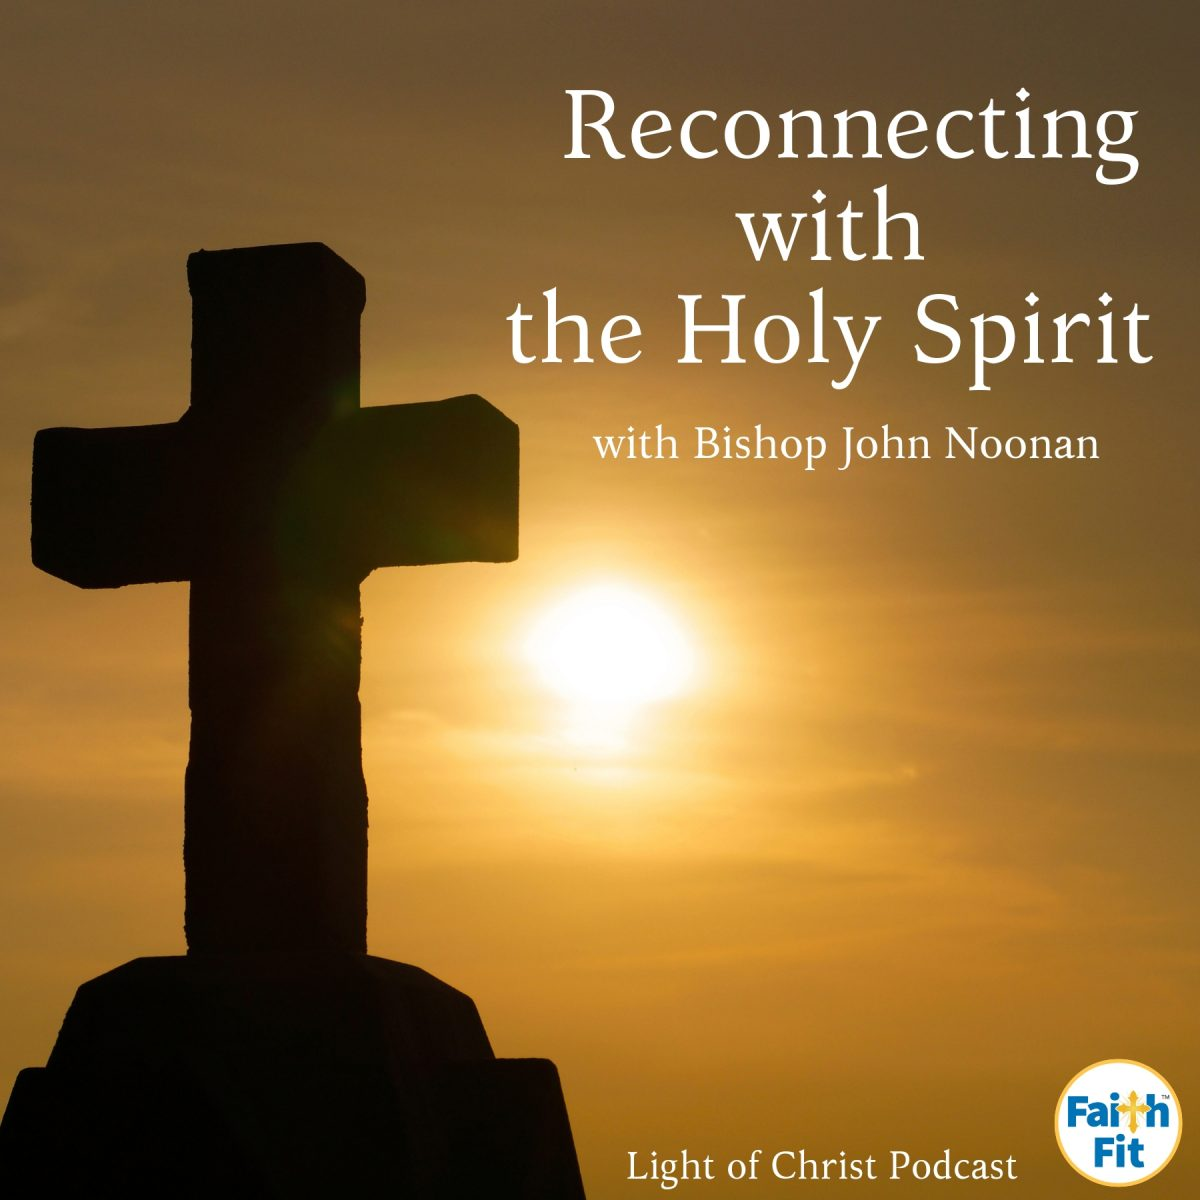 #2: Reconnecting with The Holy Spirit